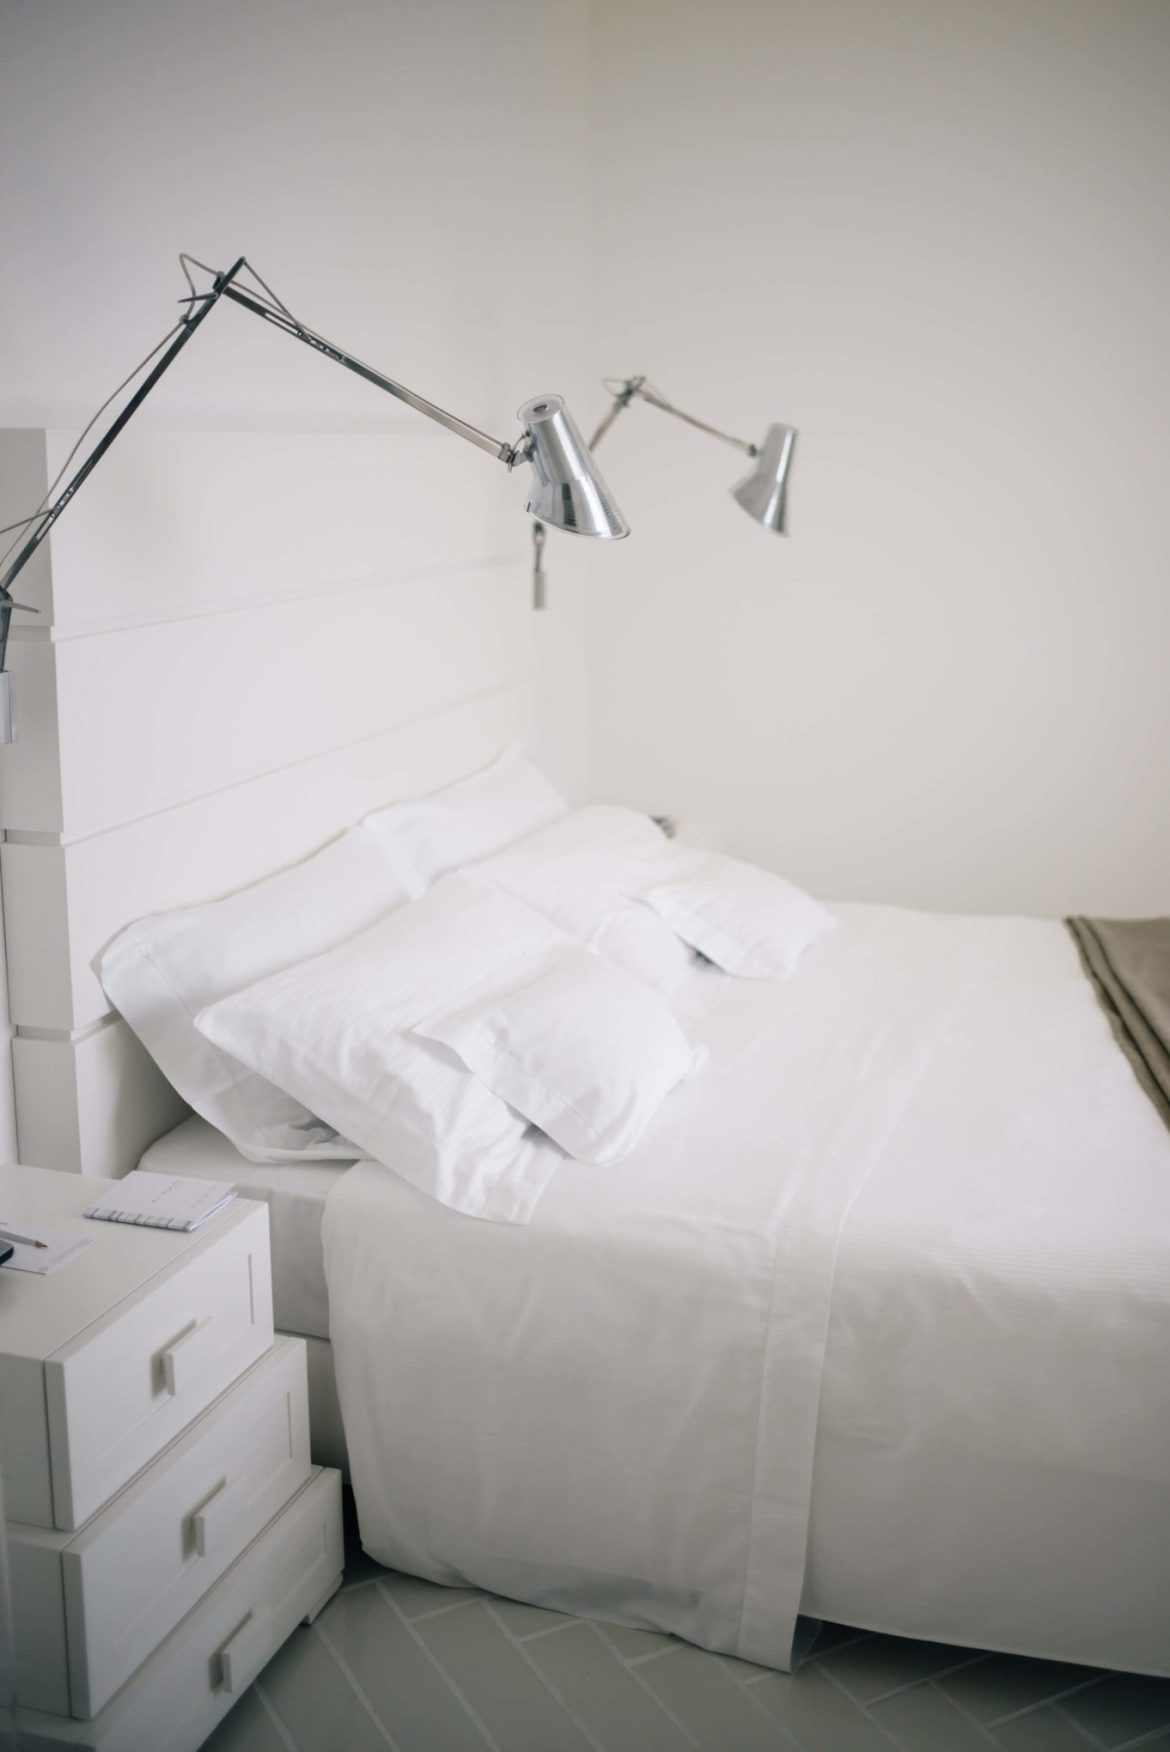 Bed and floss lamps at Casa Angelina Lifestyle Hotel in Praiano Italy, The Taste Edit